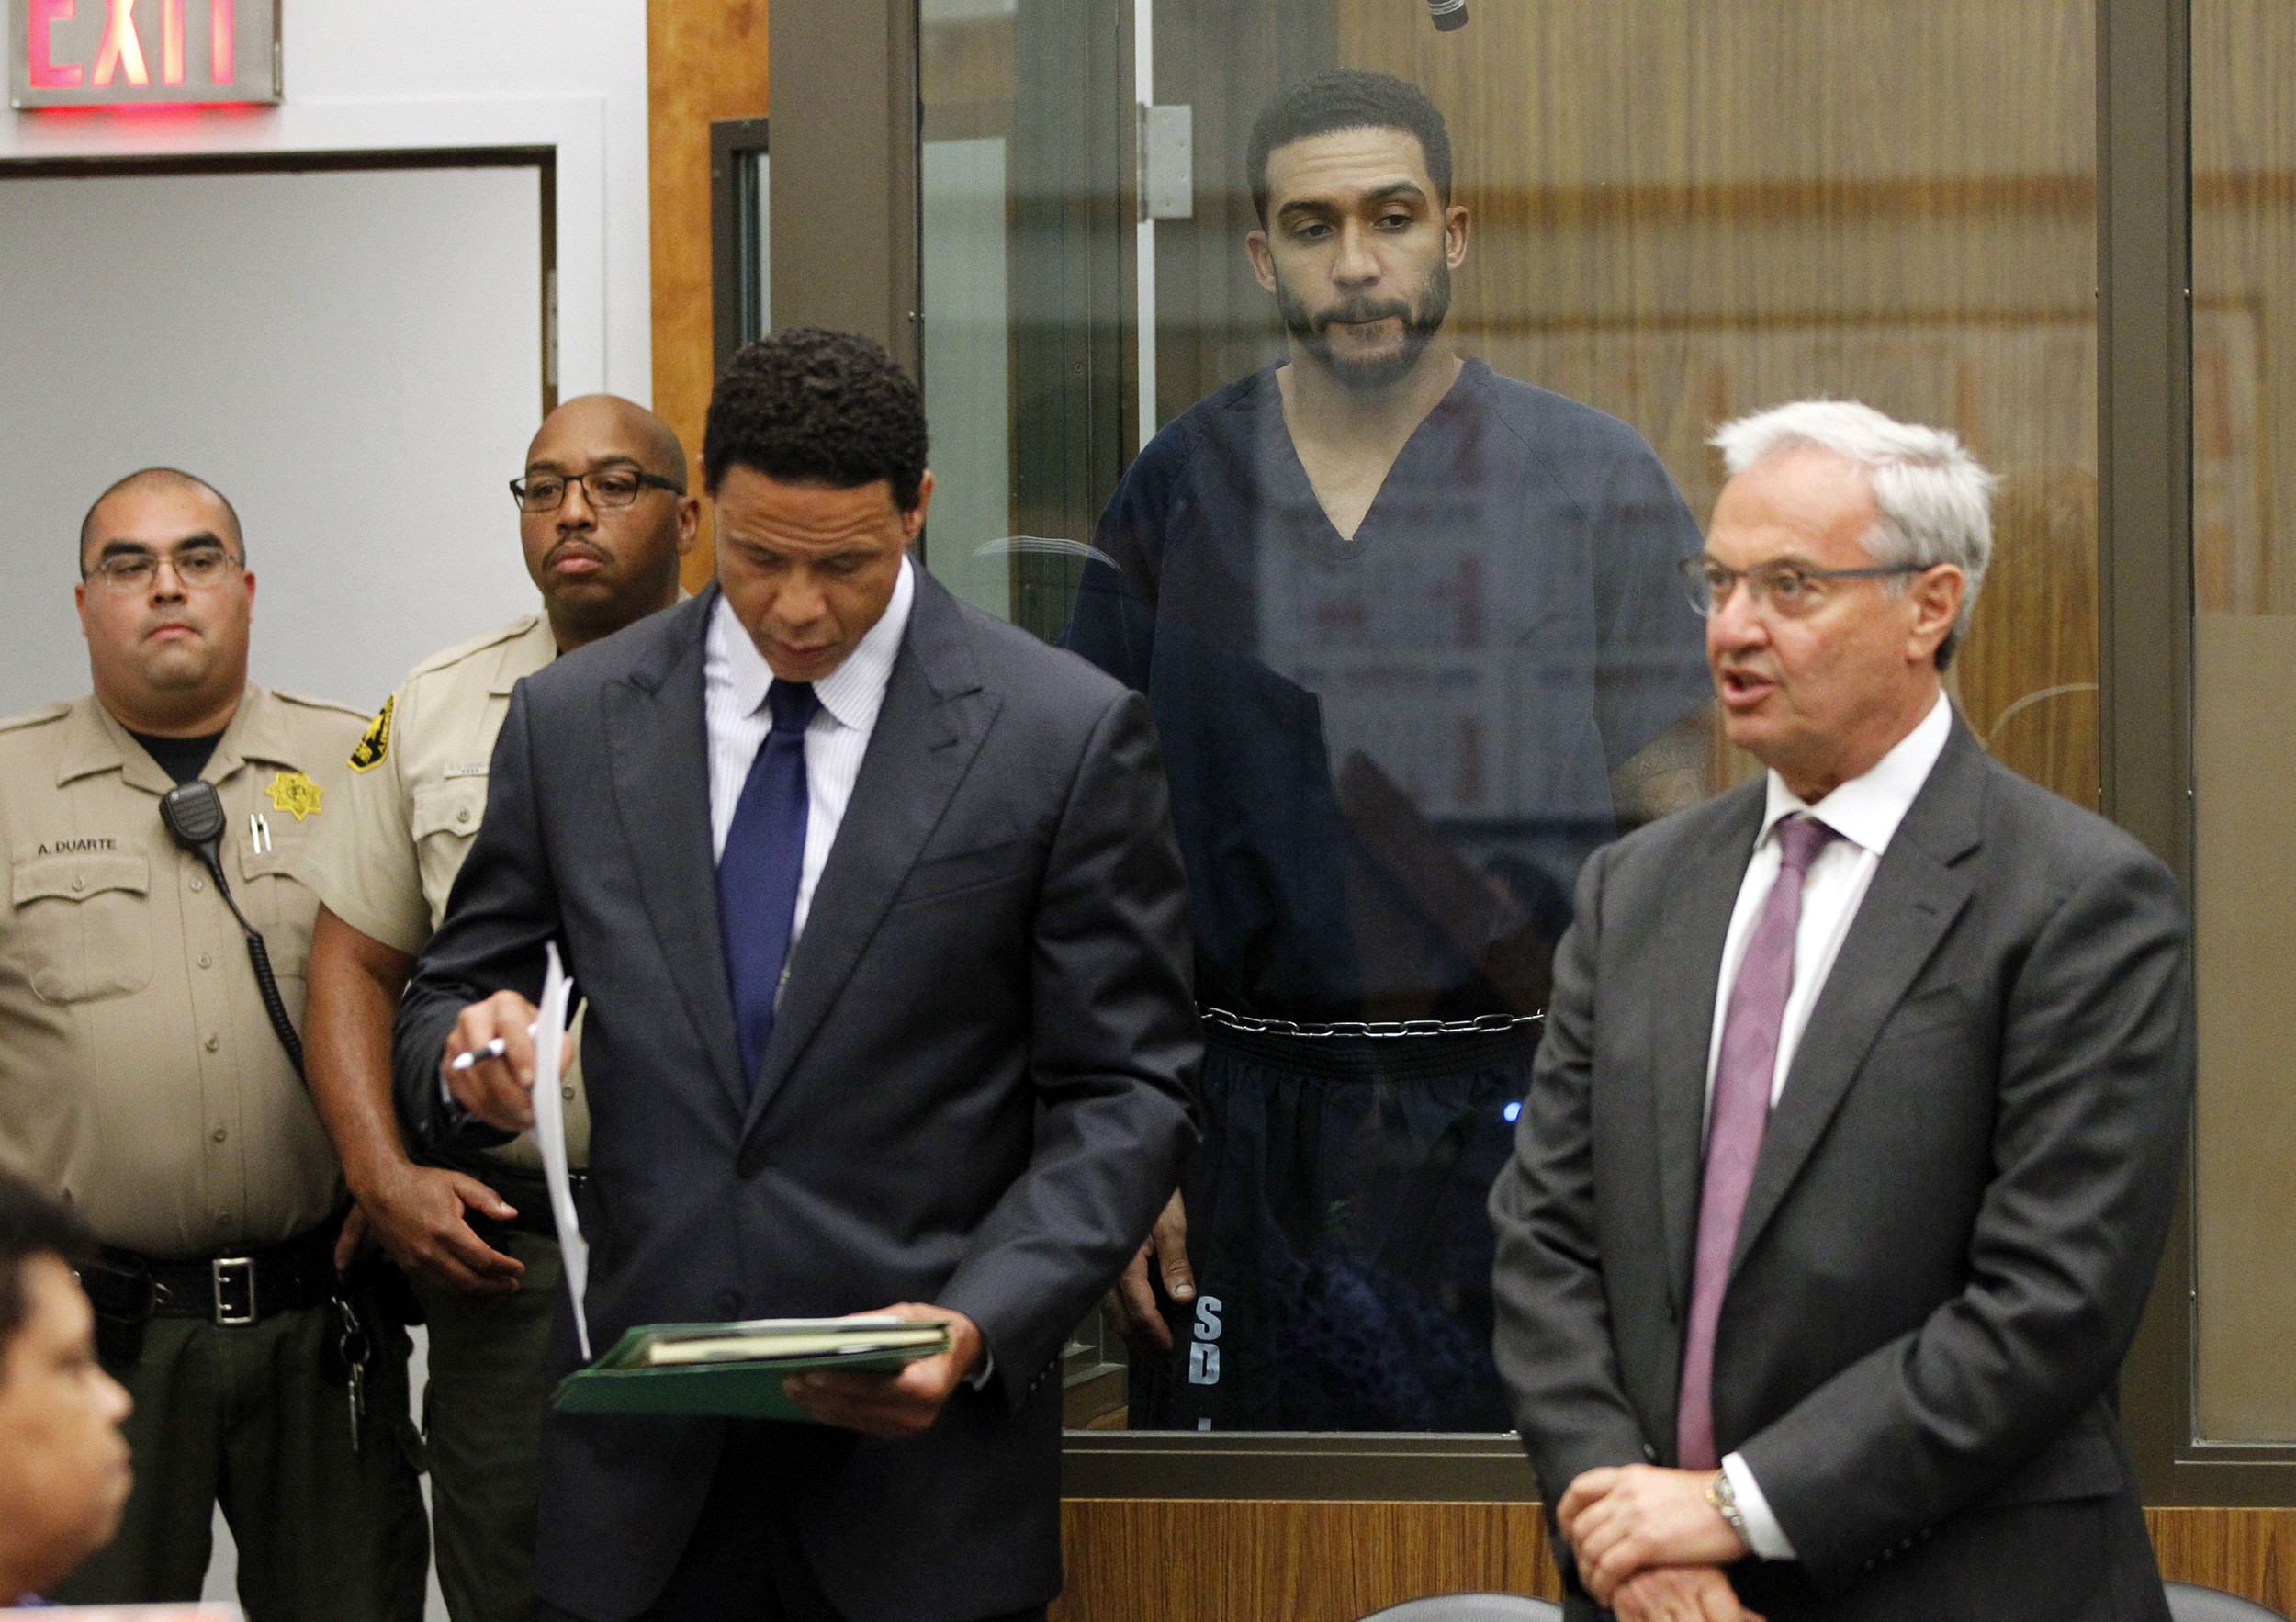 Former NFL Star Kellen Winslow Is Convicted Of Raping A 58-year-old Homeless Woman, Faces Up To Life In Prison